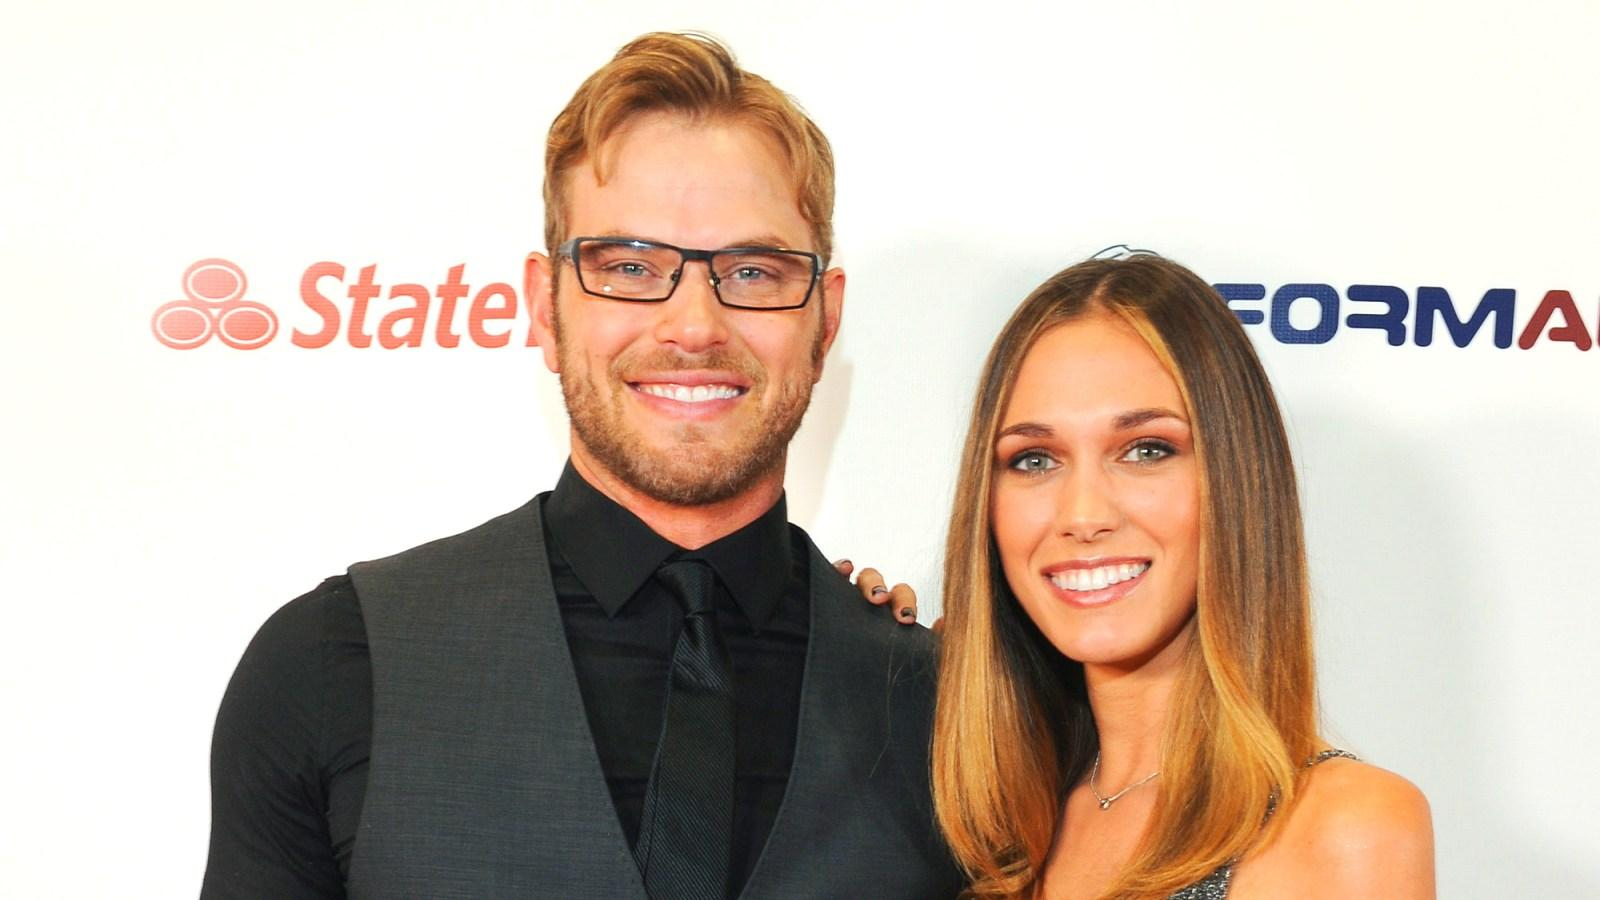 Kellan Lutz And Wife Brittany Expecting Their First Child - Check Out Their Adorable Announcement!